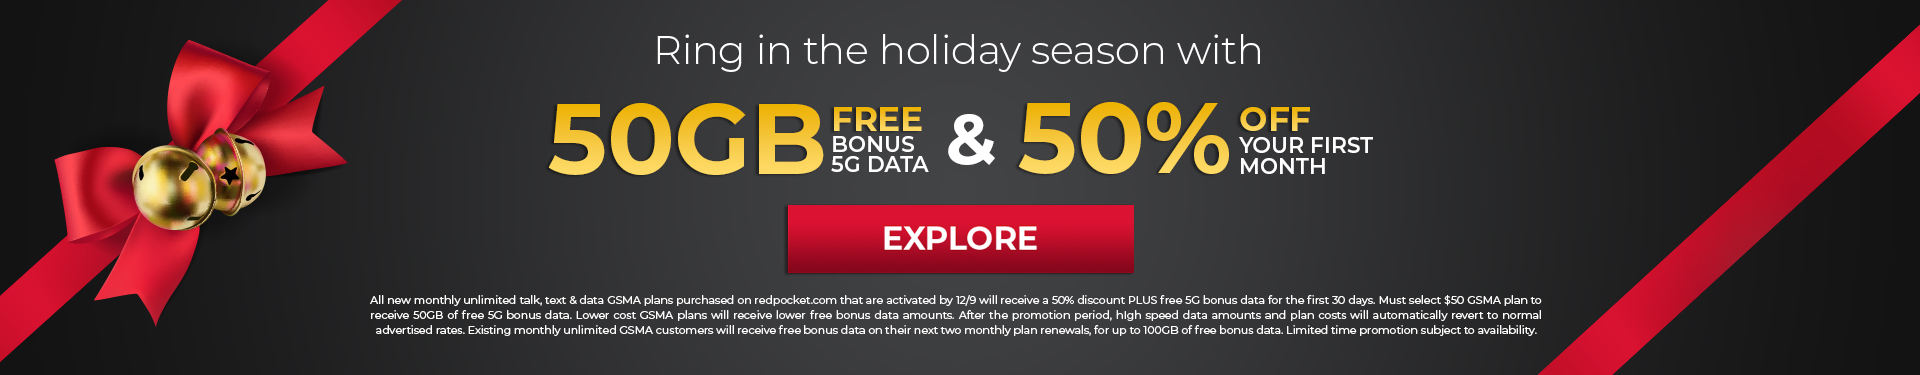 50 percent off first month along with 50gb free data for 30 days